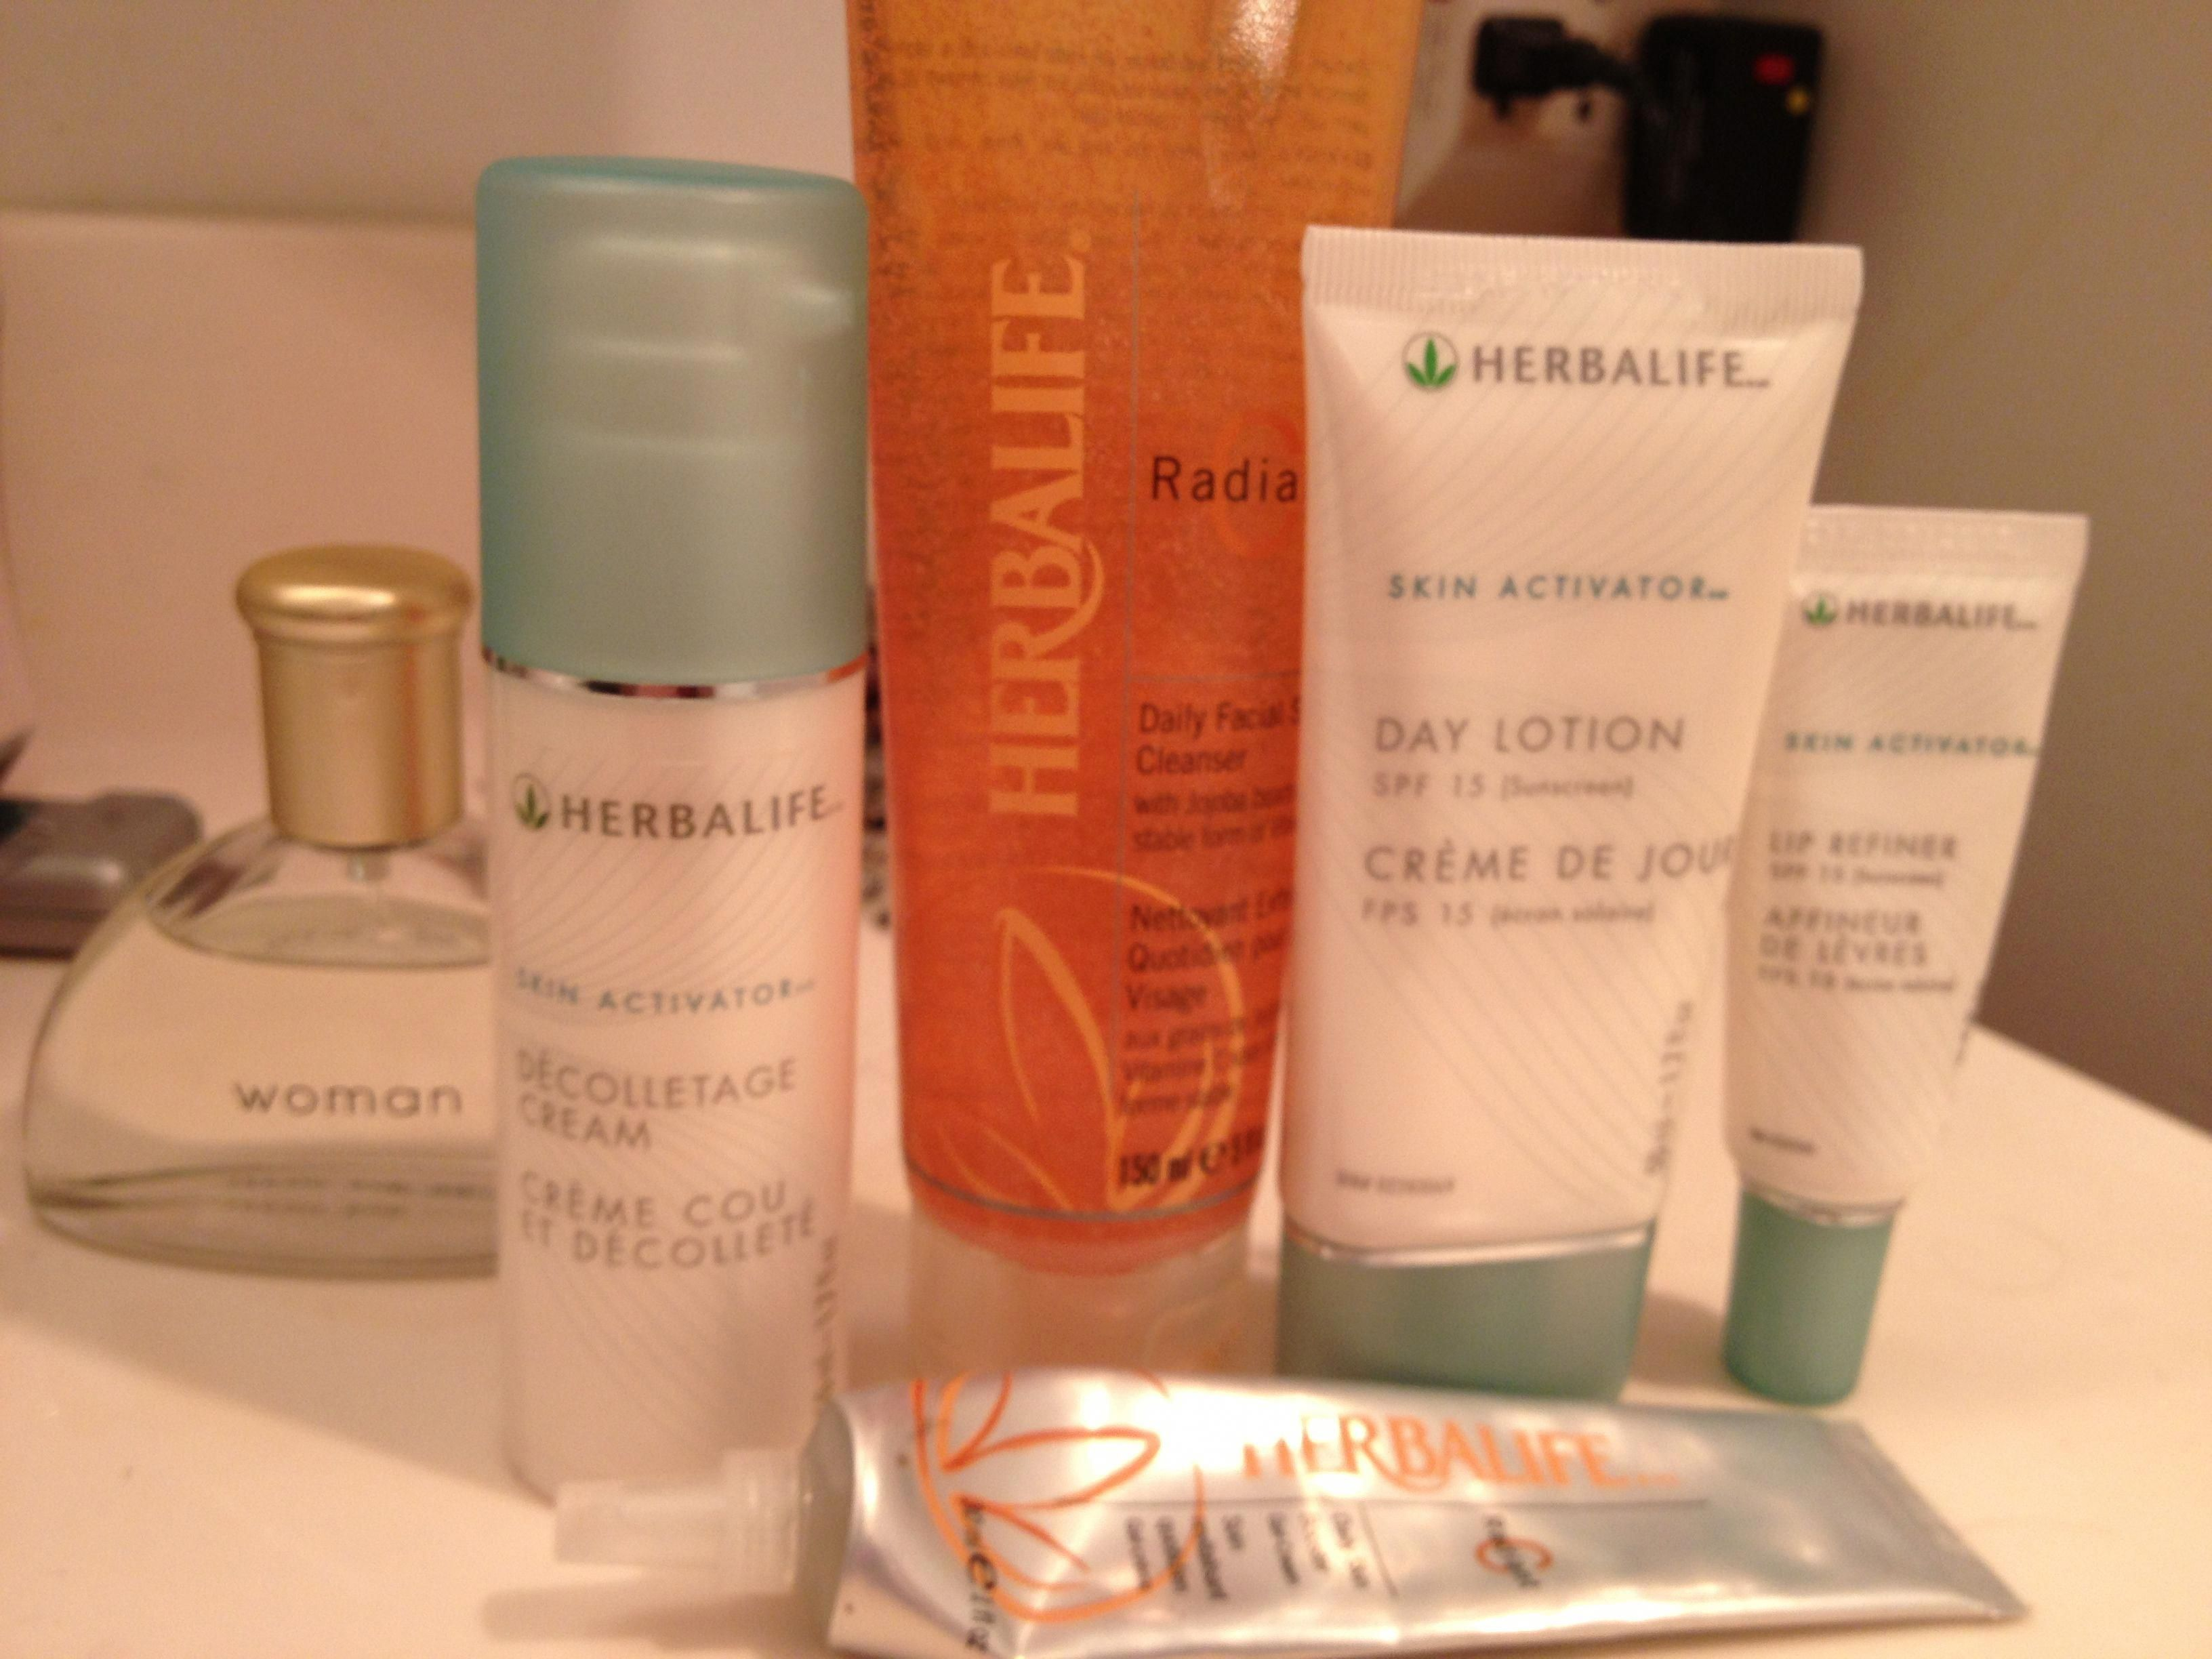 Herbalife Skin Care Line Is Amazing Who Wants Anti Aging Products That Are Gentle And Effective Ef Skin Care Toner Products Anti Aging Anti Aging Skin Care